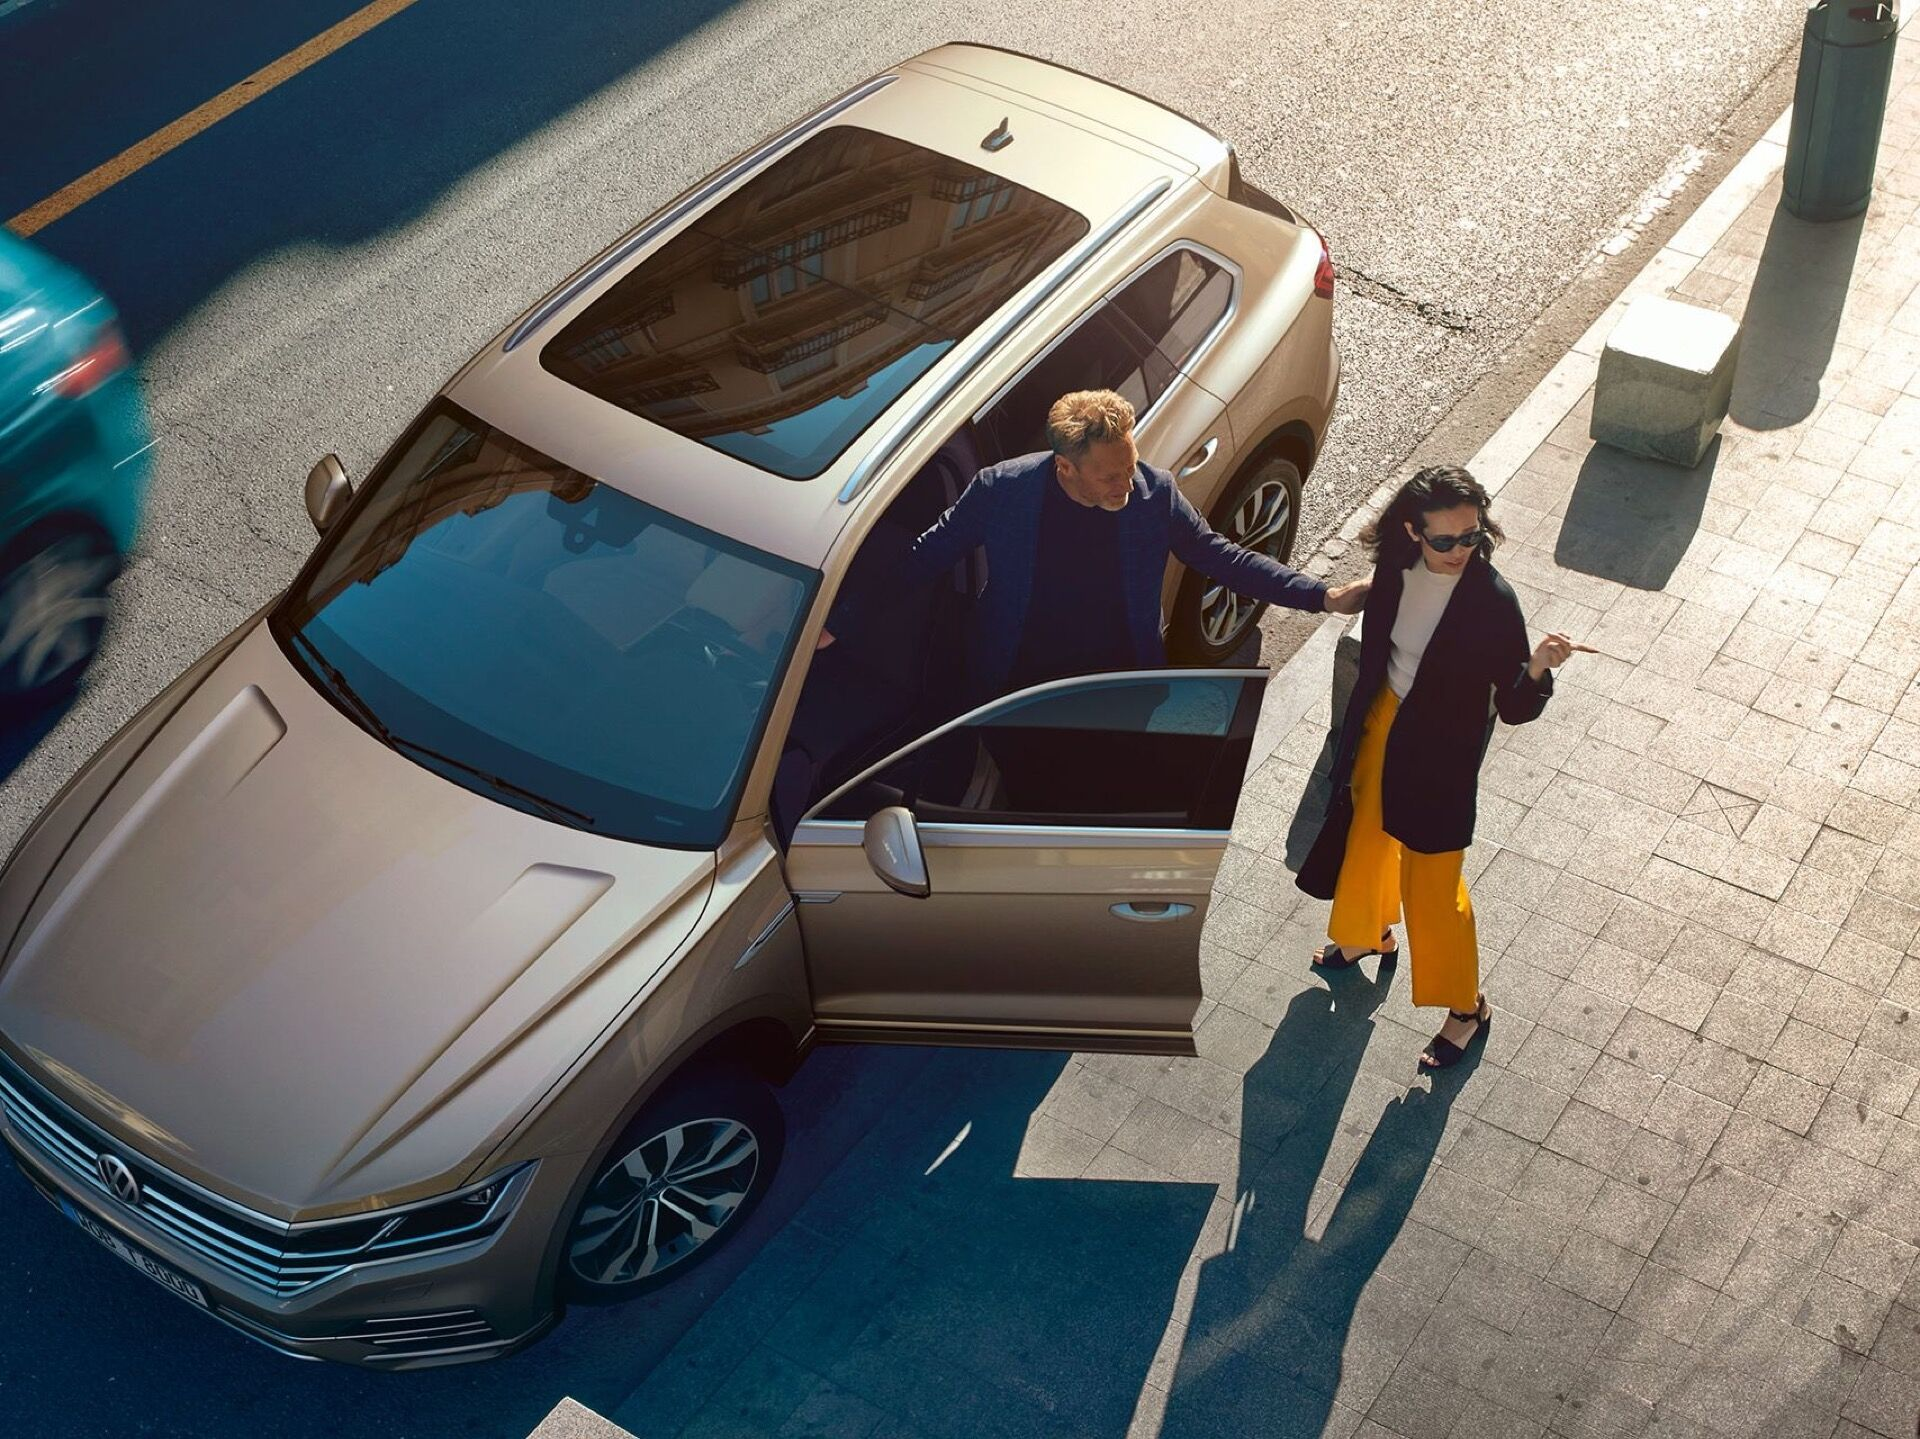 vw touareg one million panoramic roof aerial view